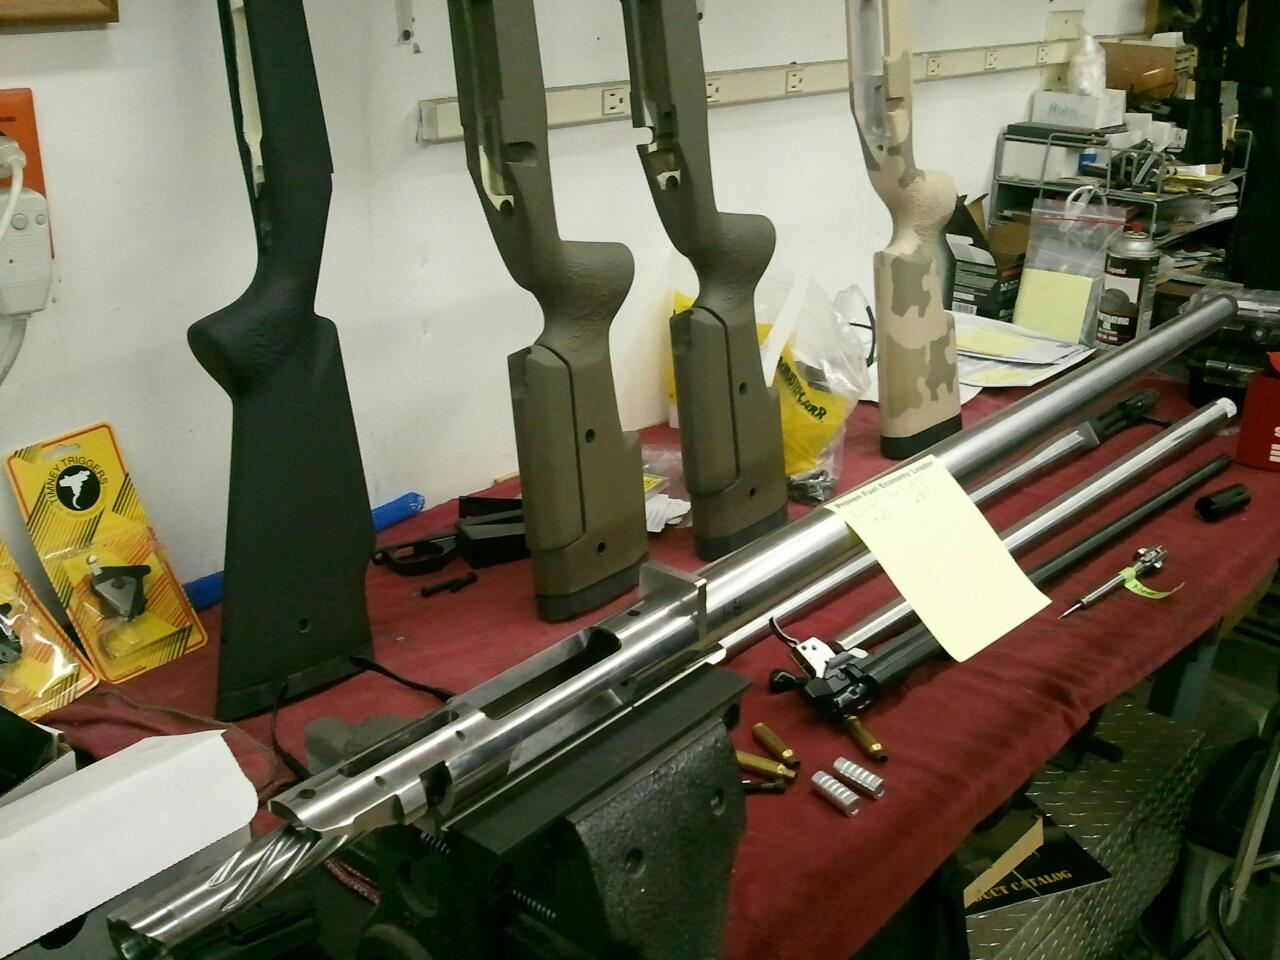 Final assembly of custom rifles